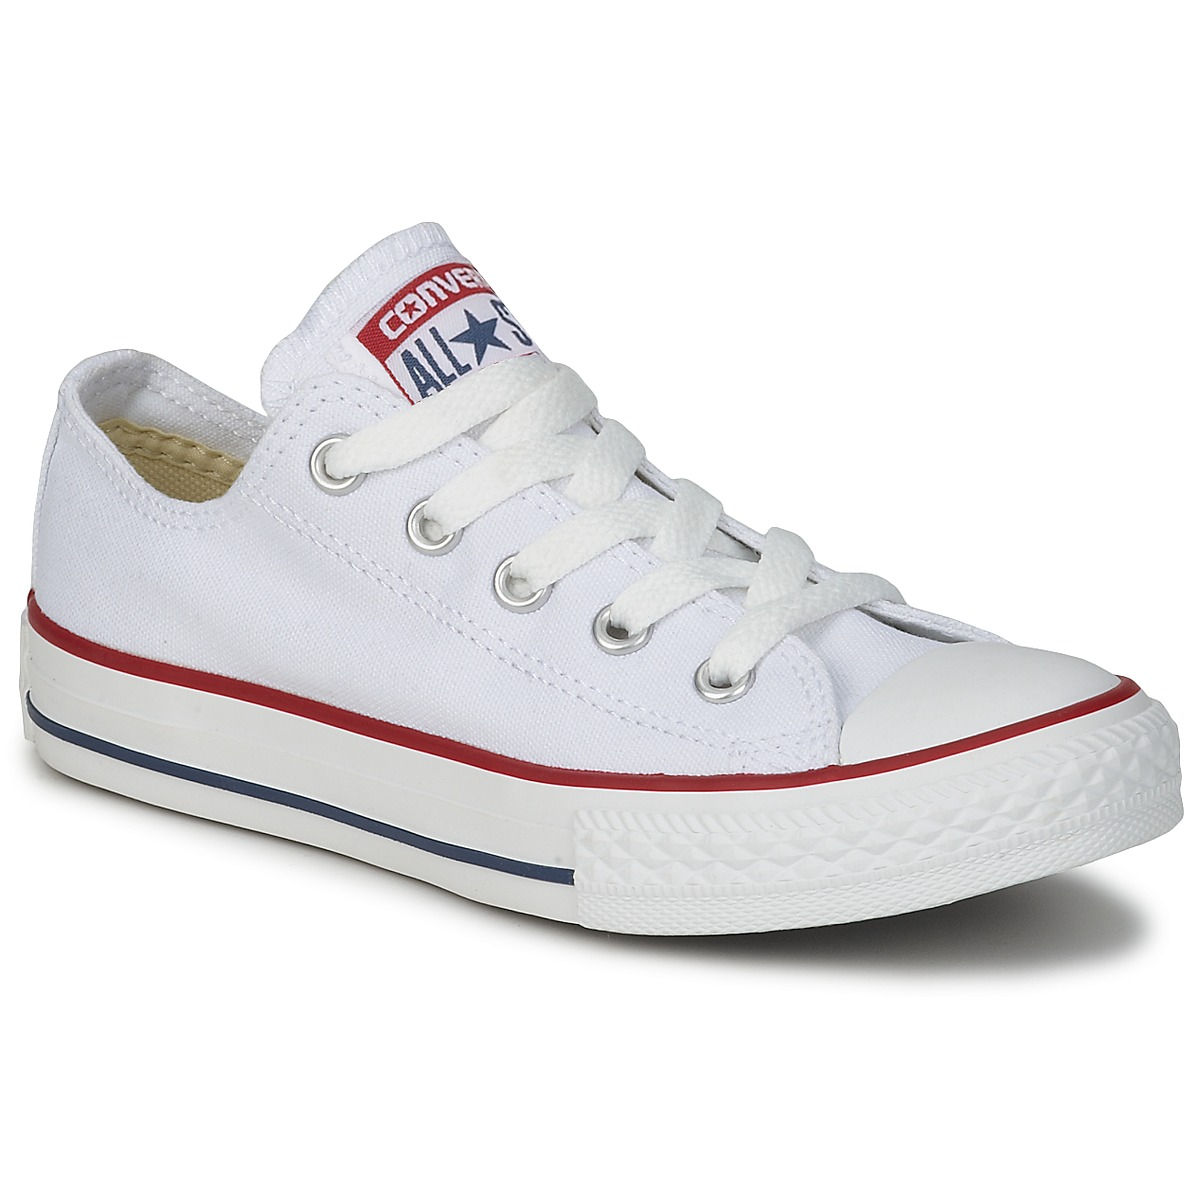 faadf11cffd6 Deportivas bajas Converse ALL STAR OX Blanco   Optical - Entrega ...